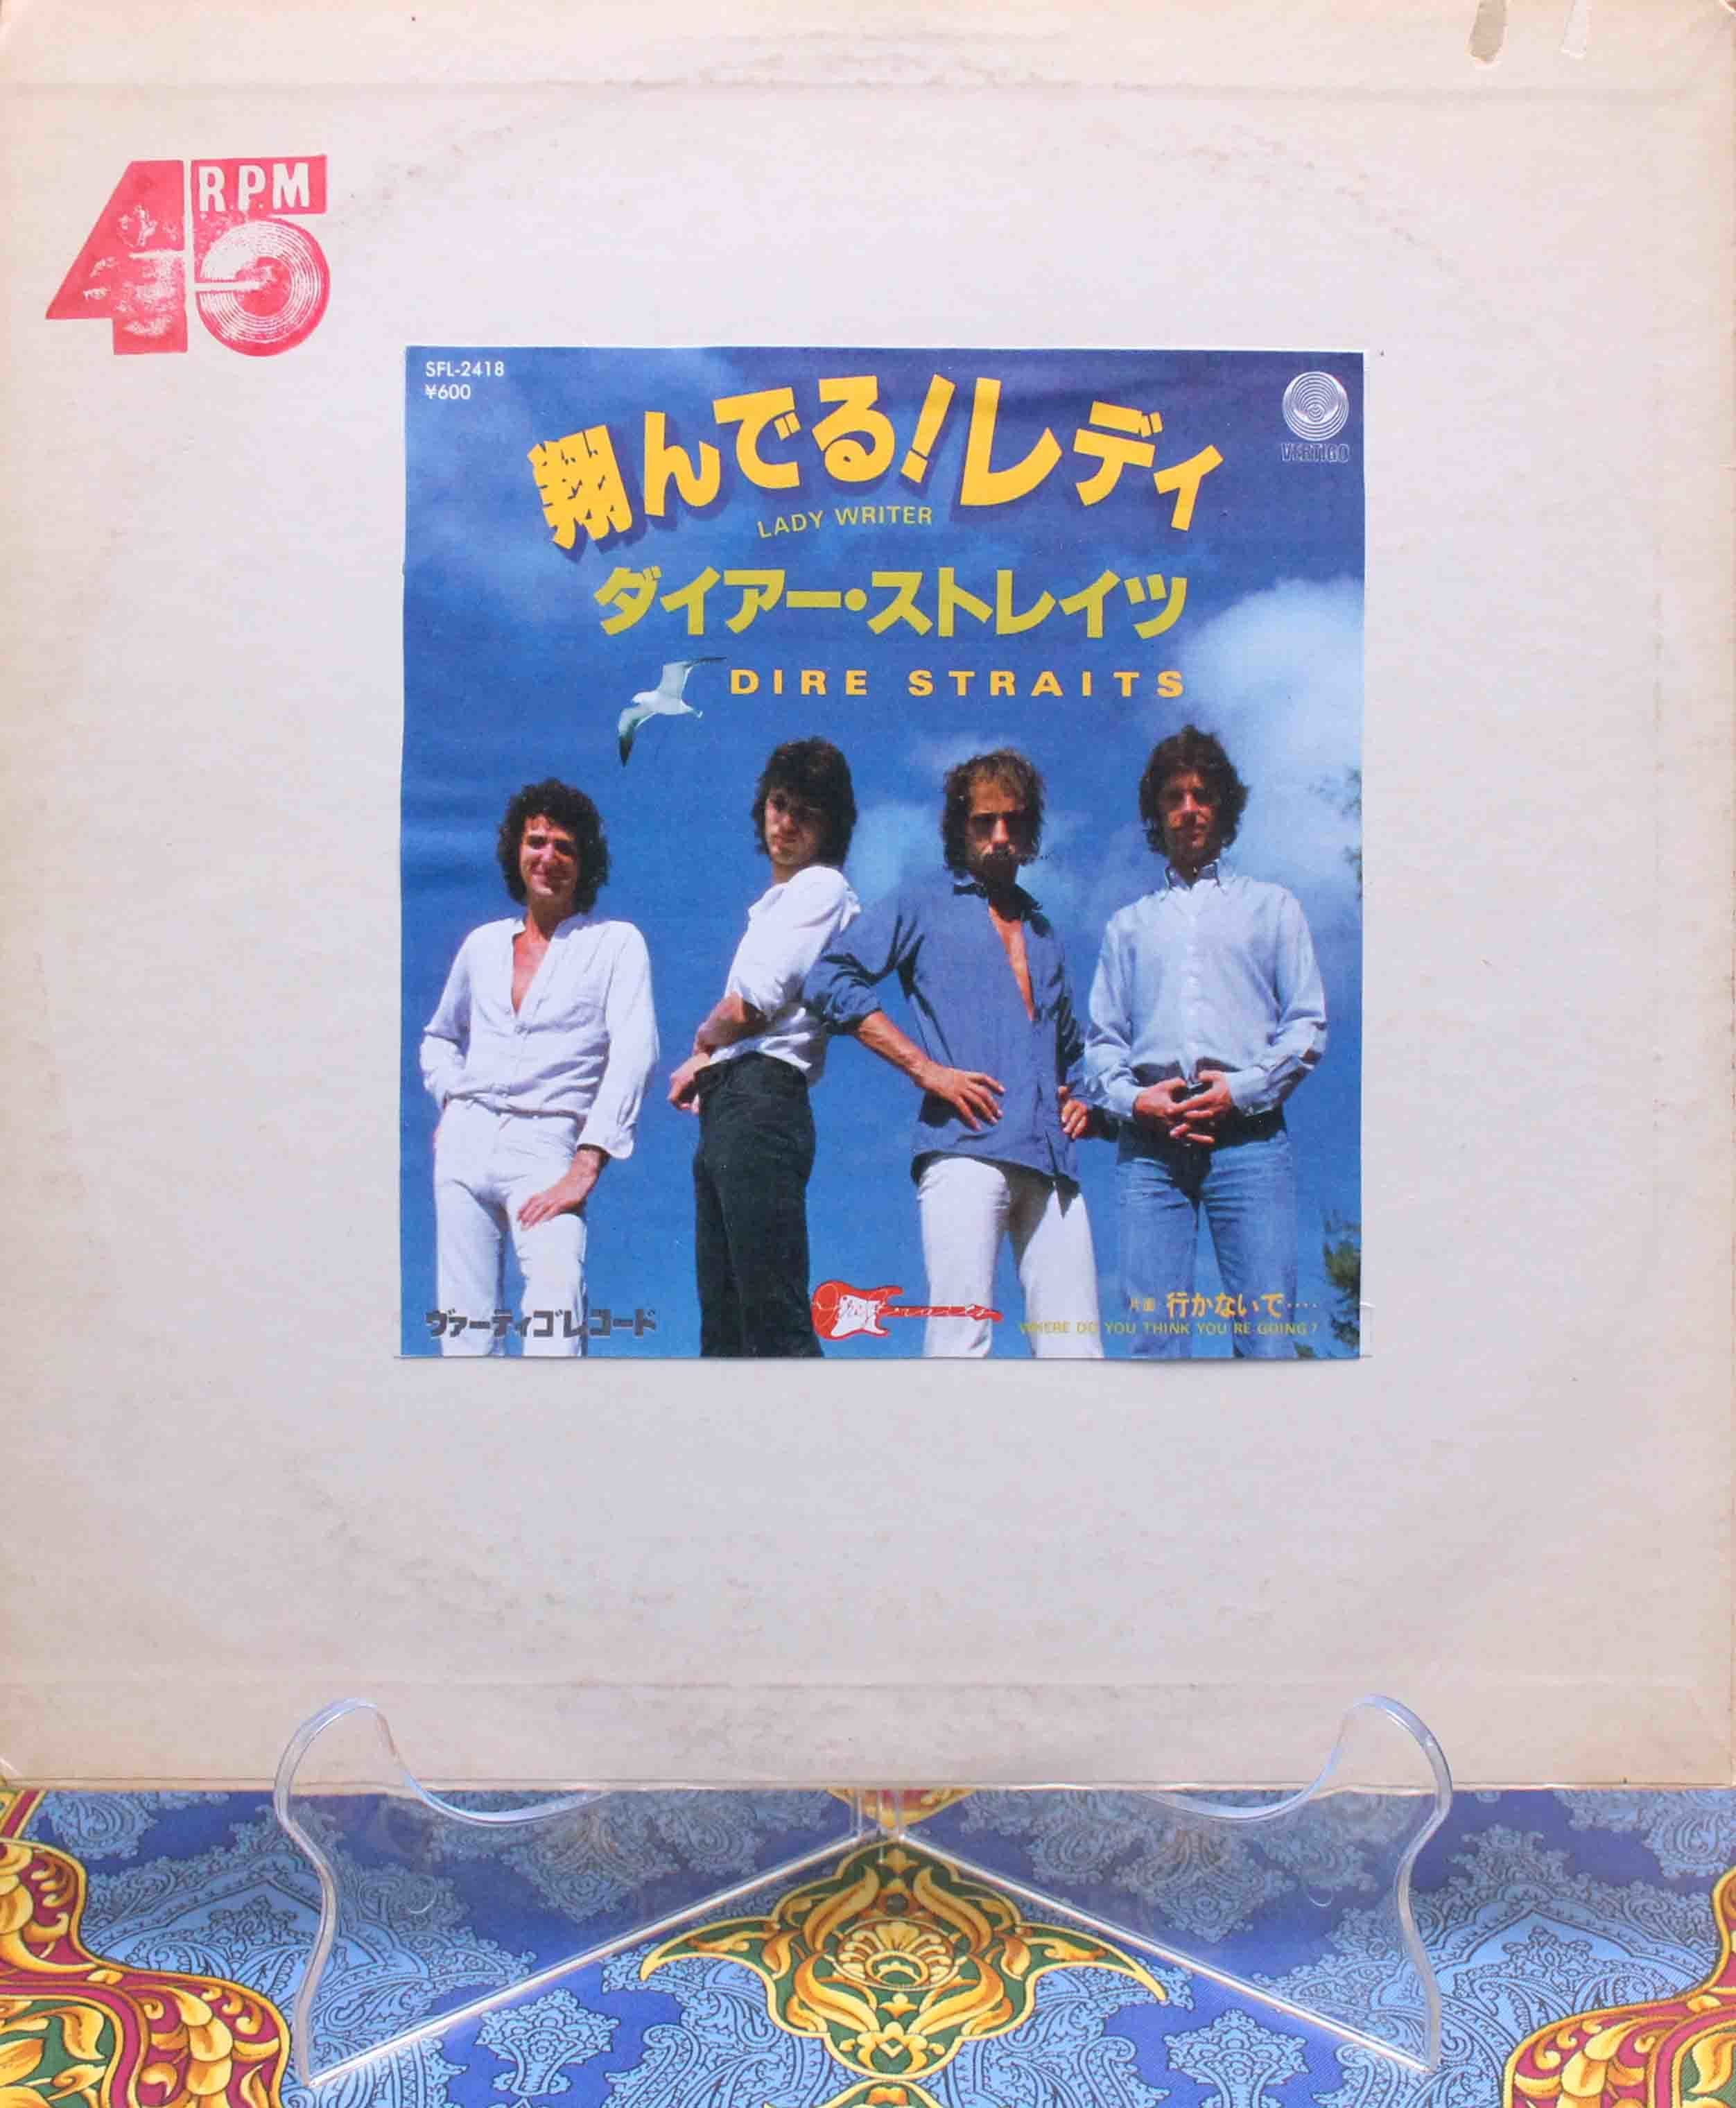 Dire Straits - Sultans of Swing Japan 02